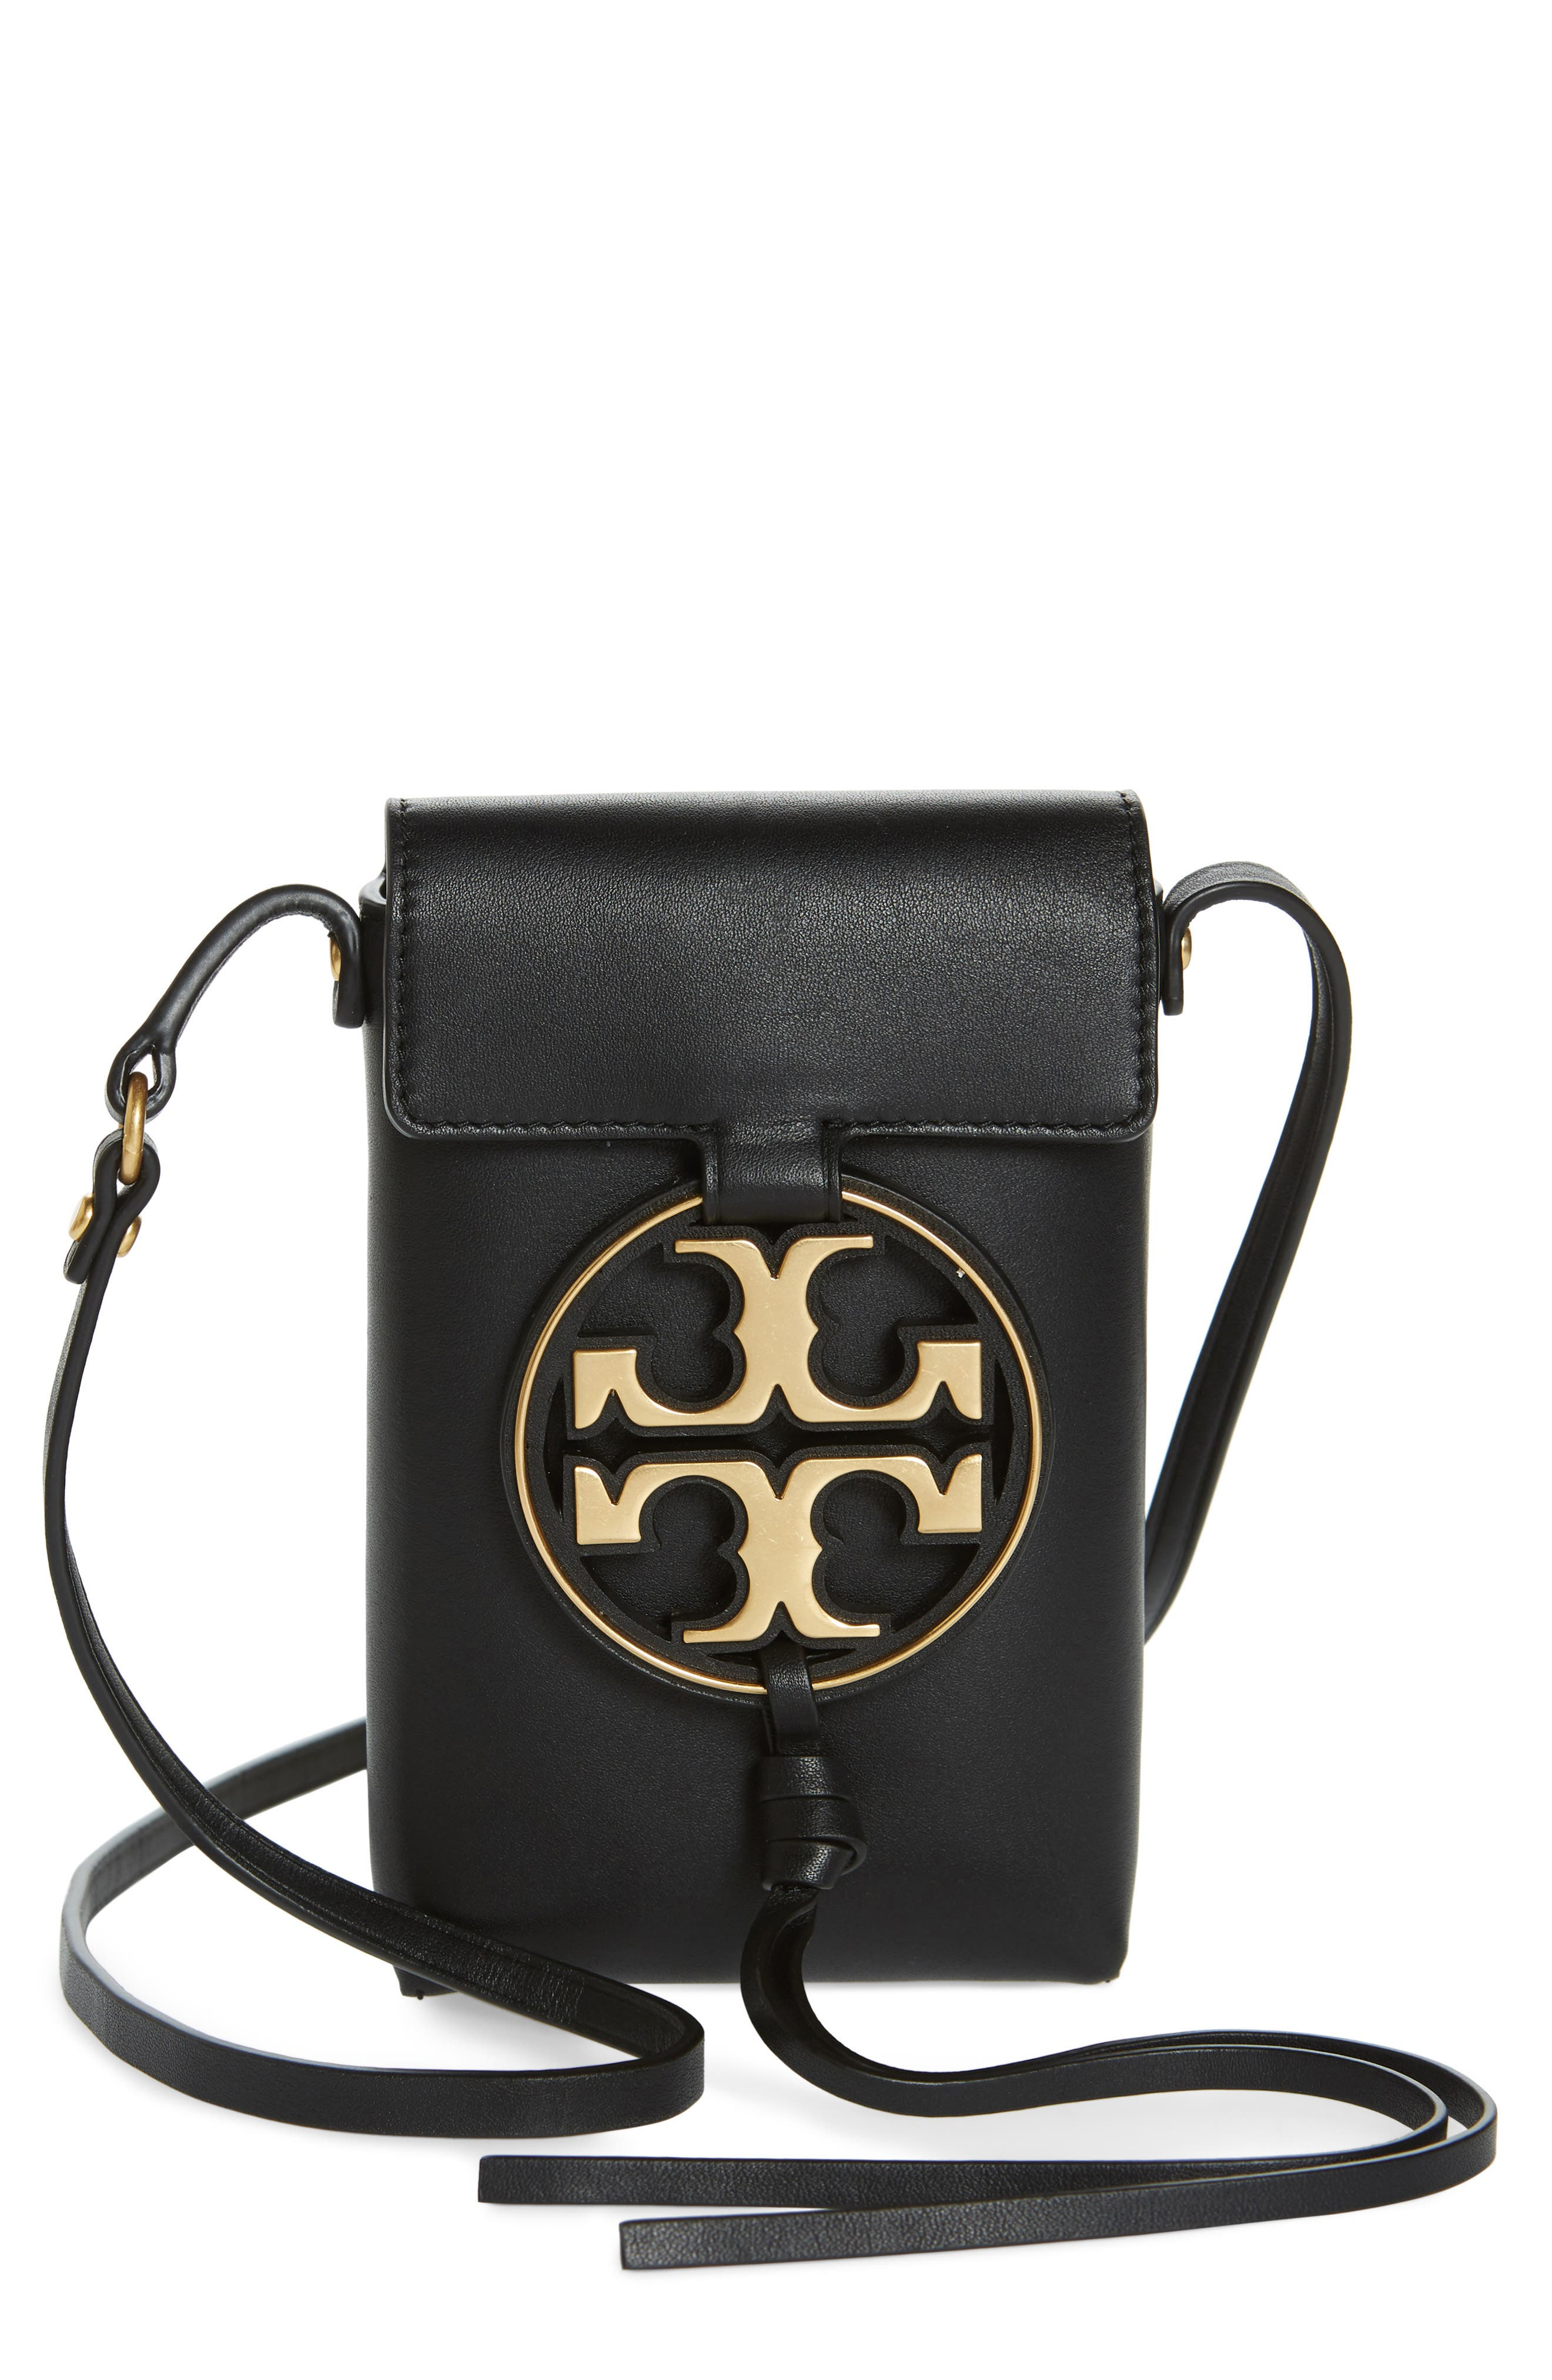 Tory Burch Miller Leather Phone